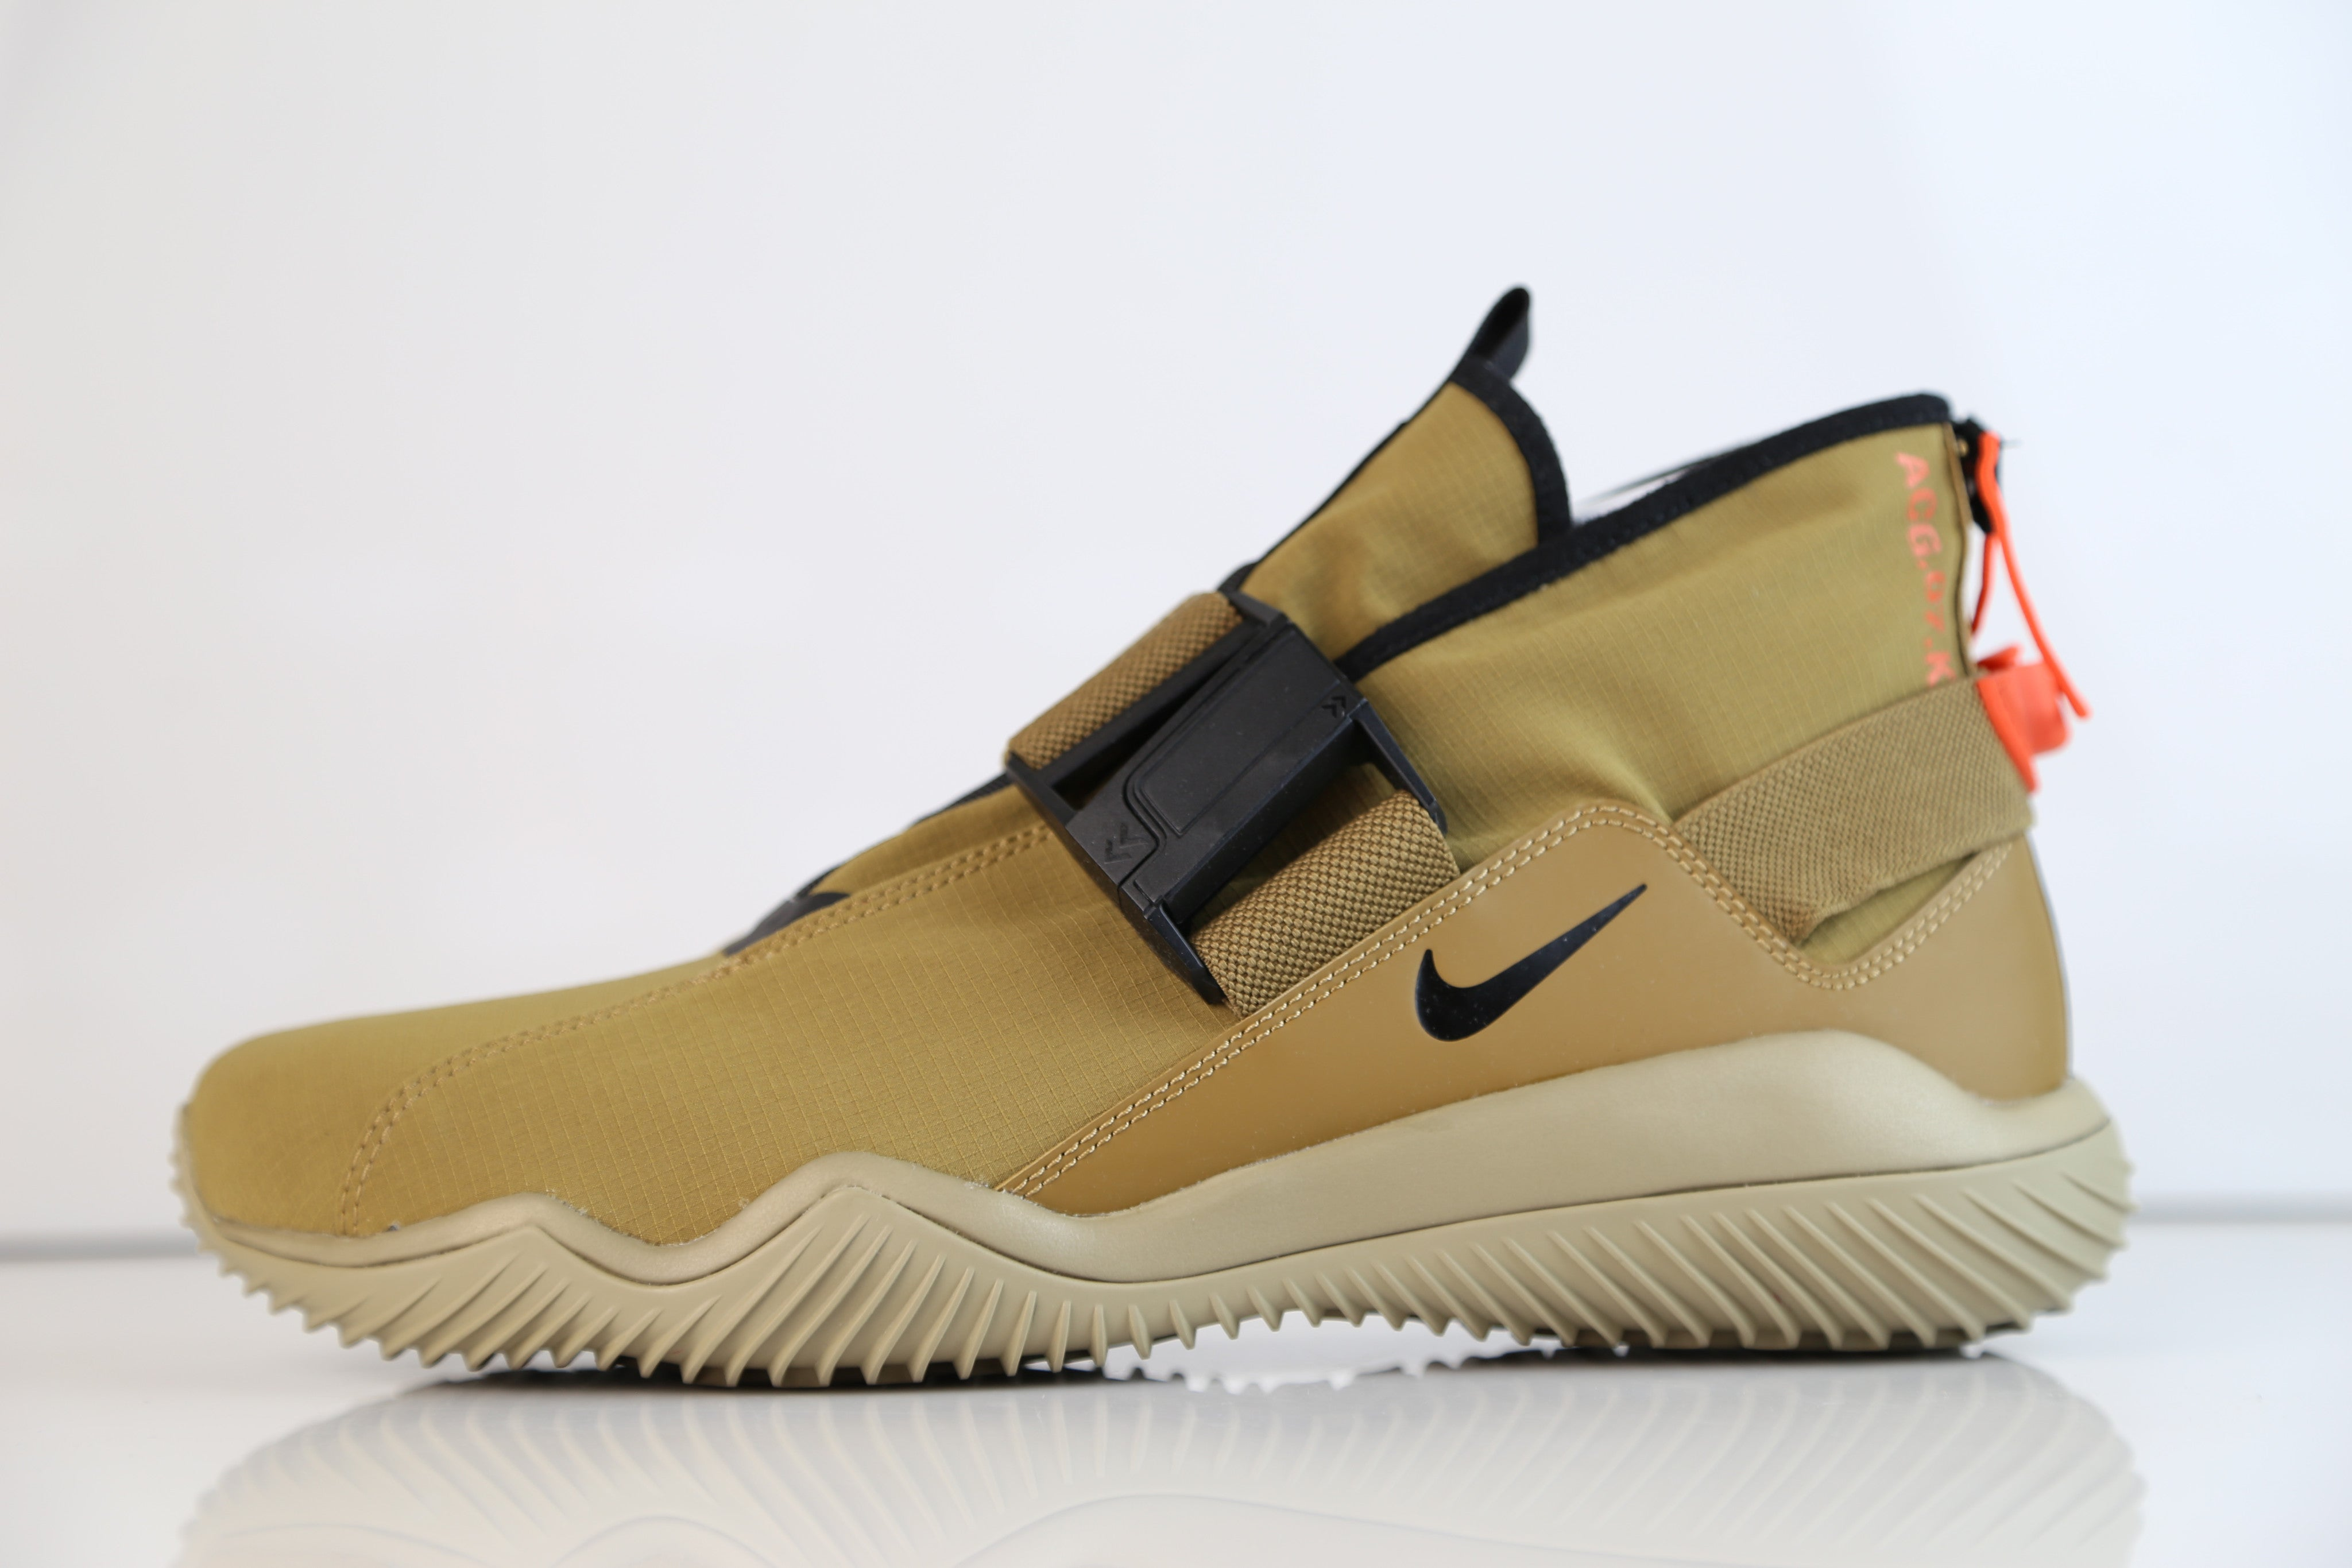 Nike Lab ACG 07 KMTR Komuyter Golden Beige Black Khaki 902776-201 8-13 free air